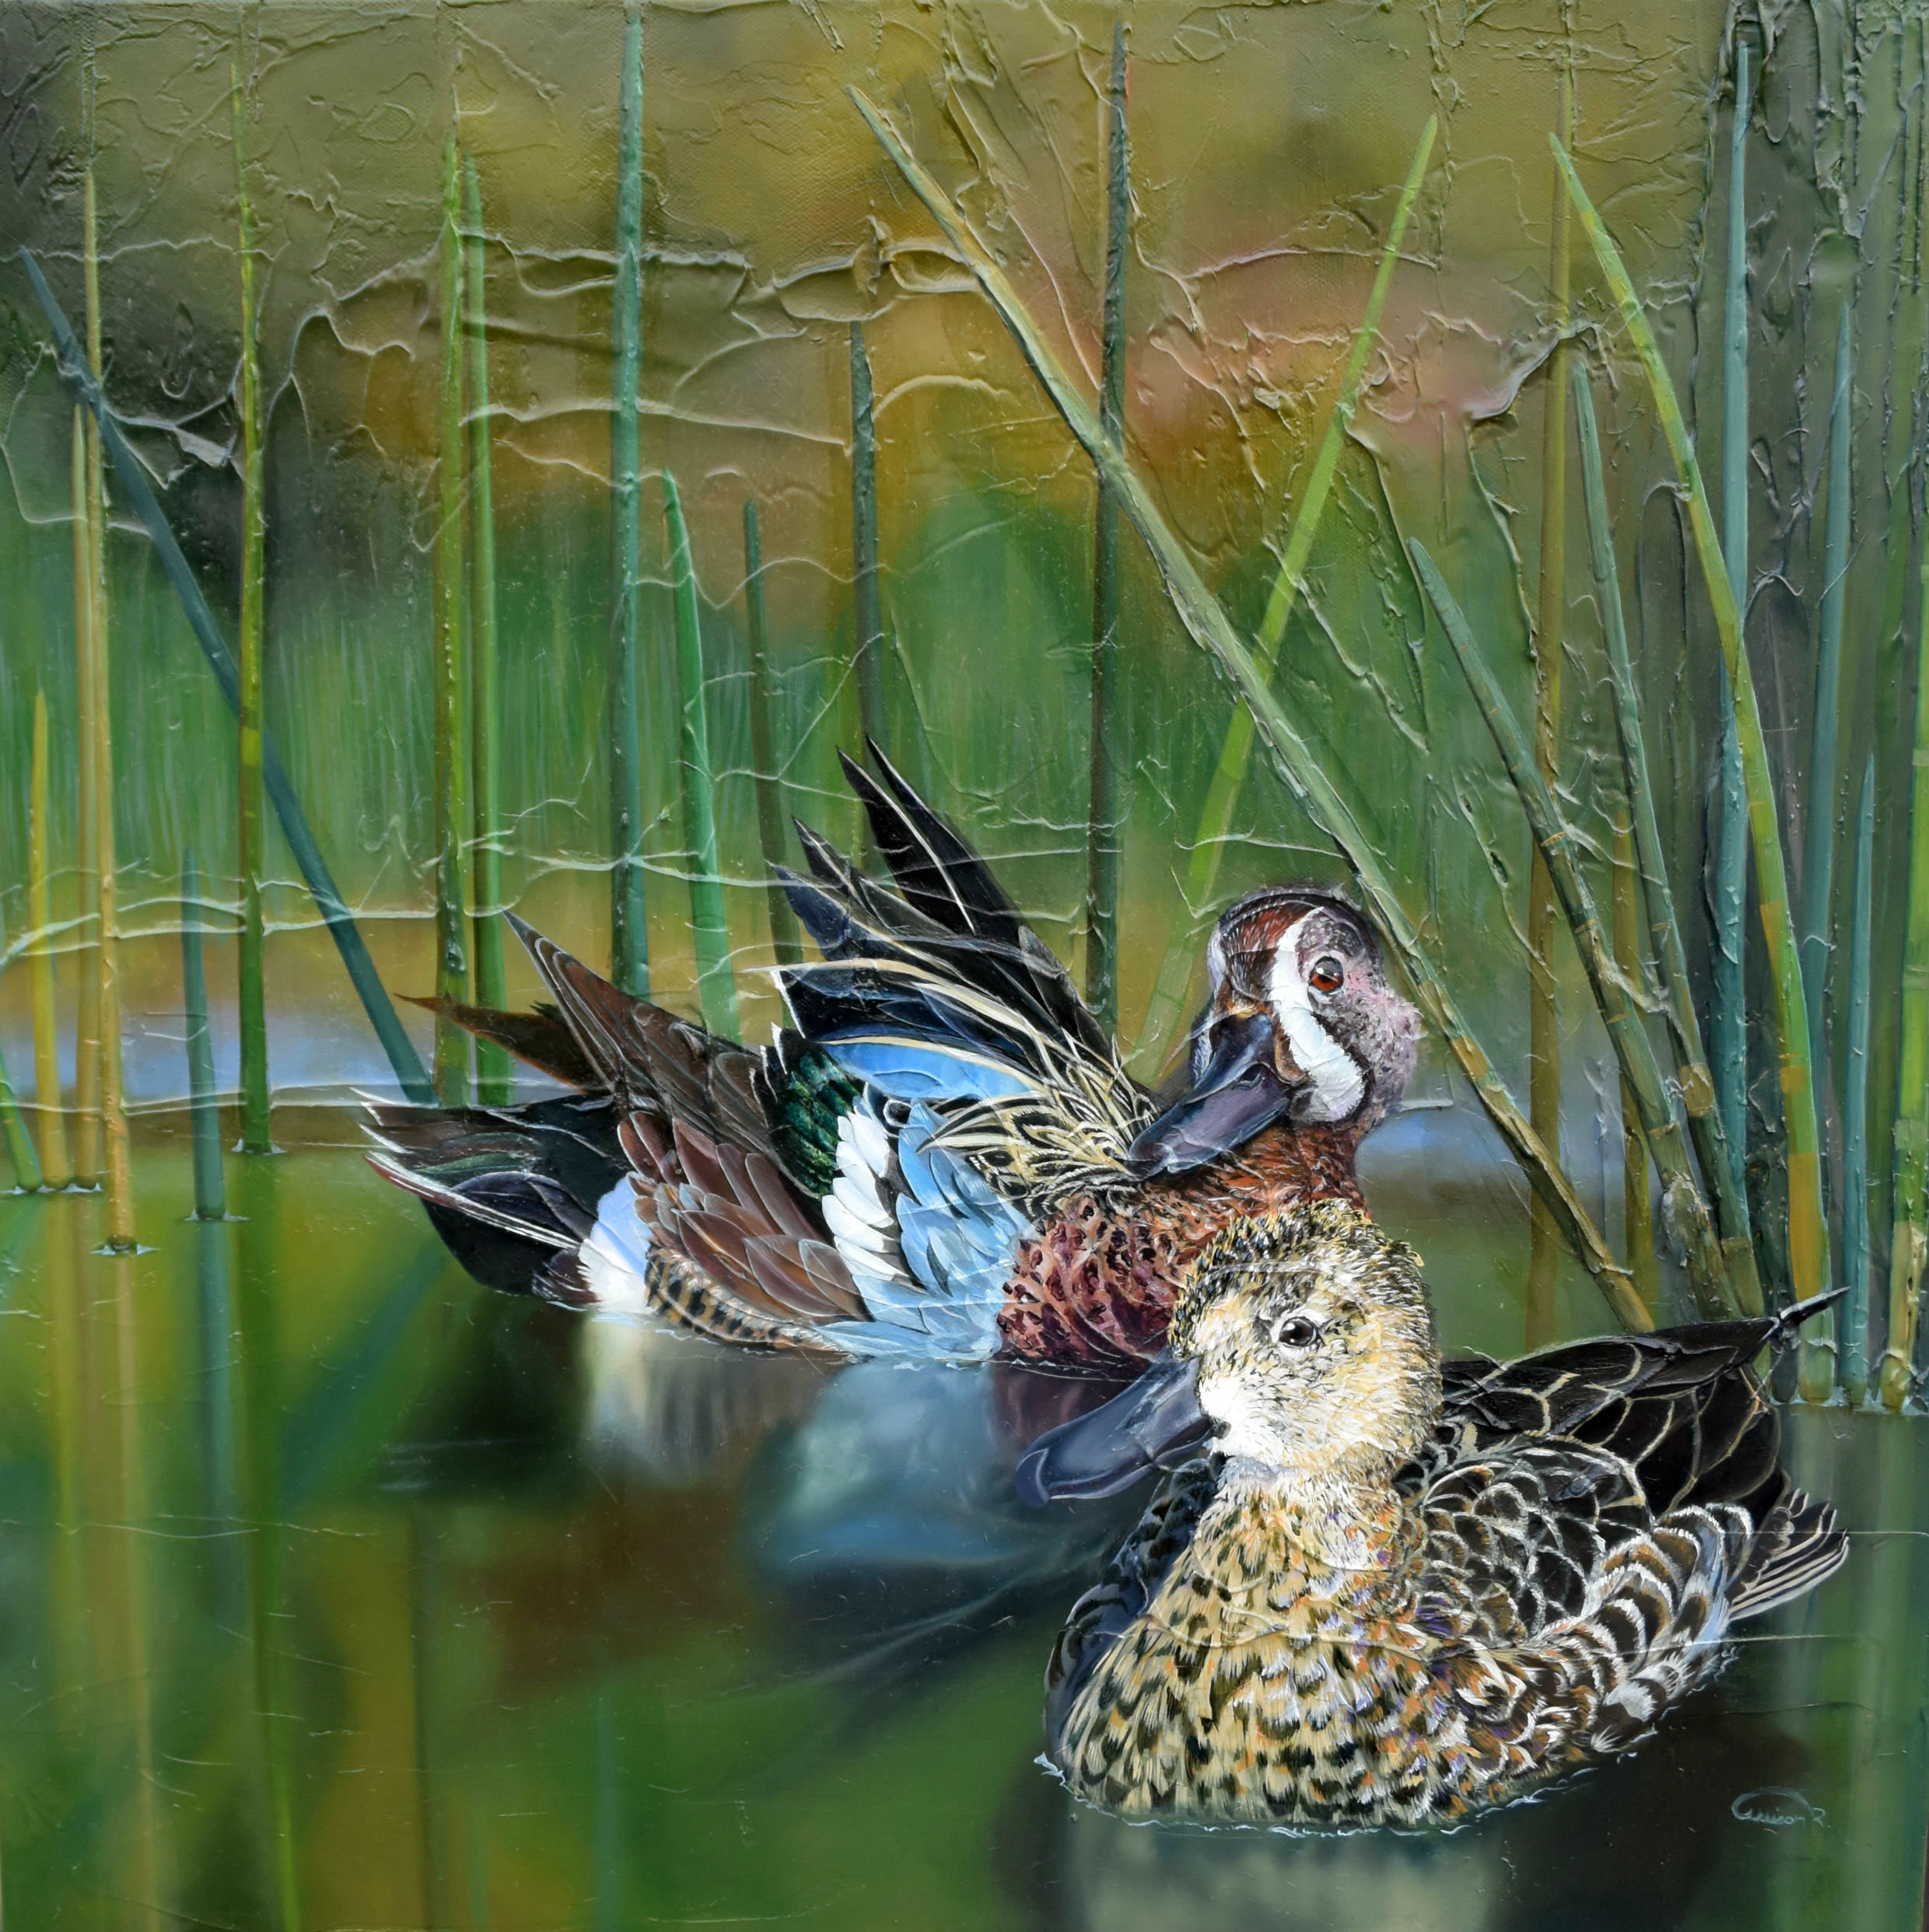 Teal wing ducks oi on canvas original artwork completed.